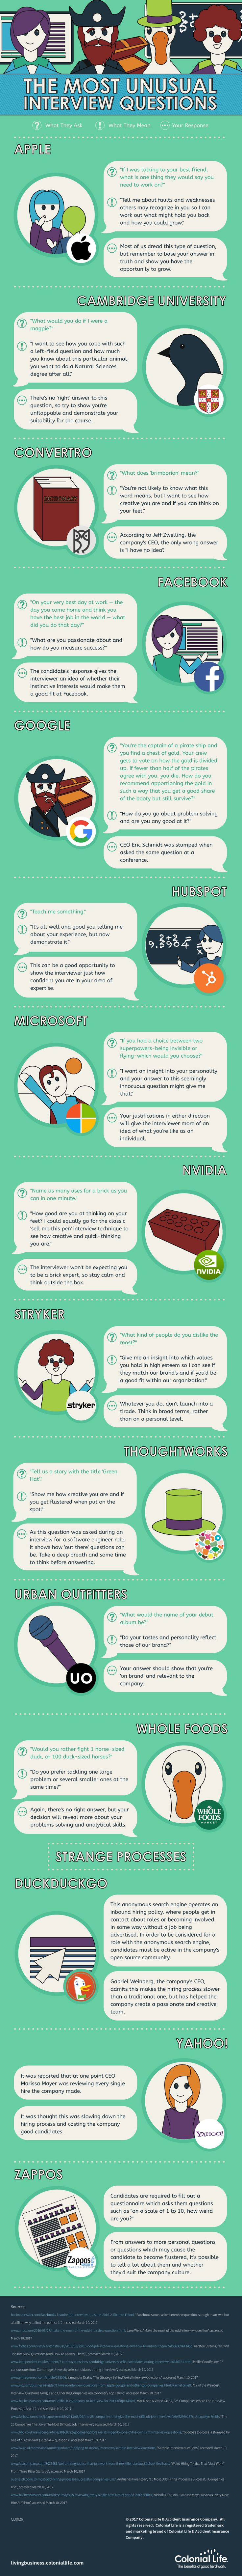 Here are some unusual interview questions that